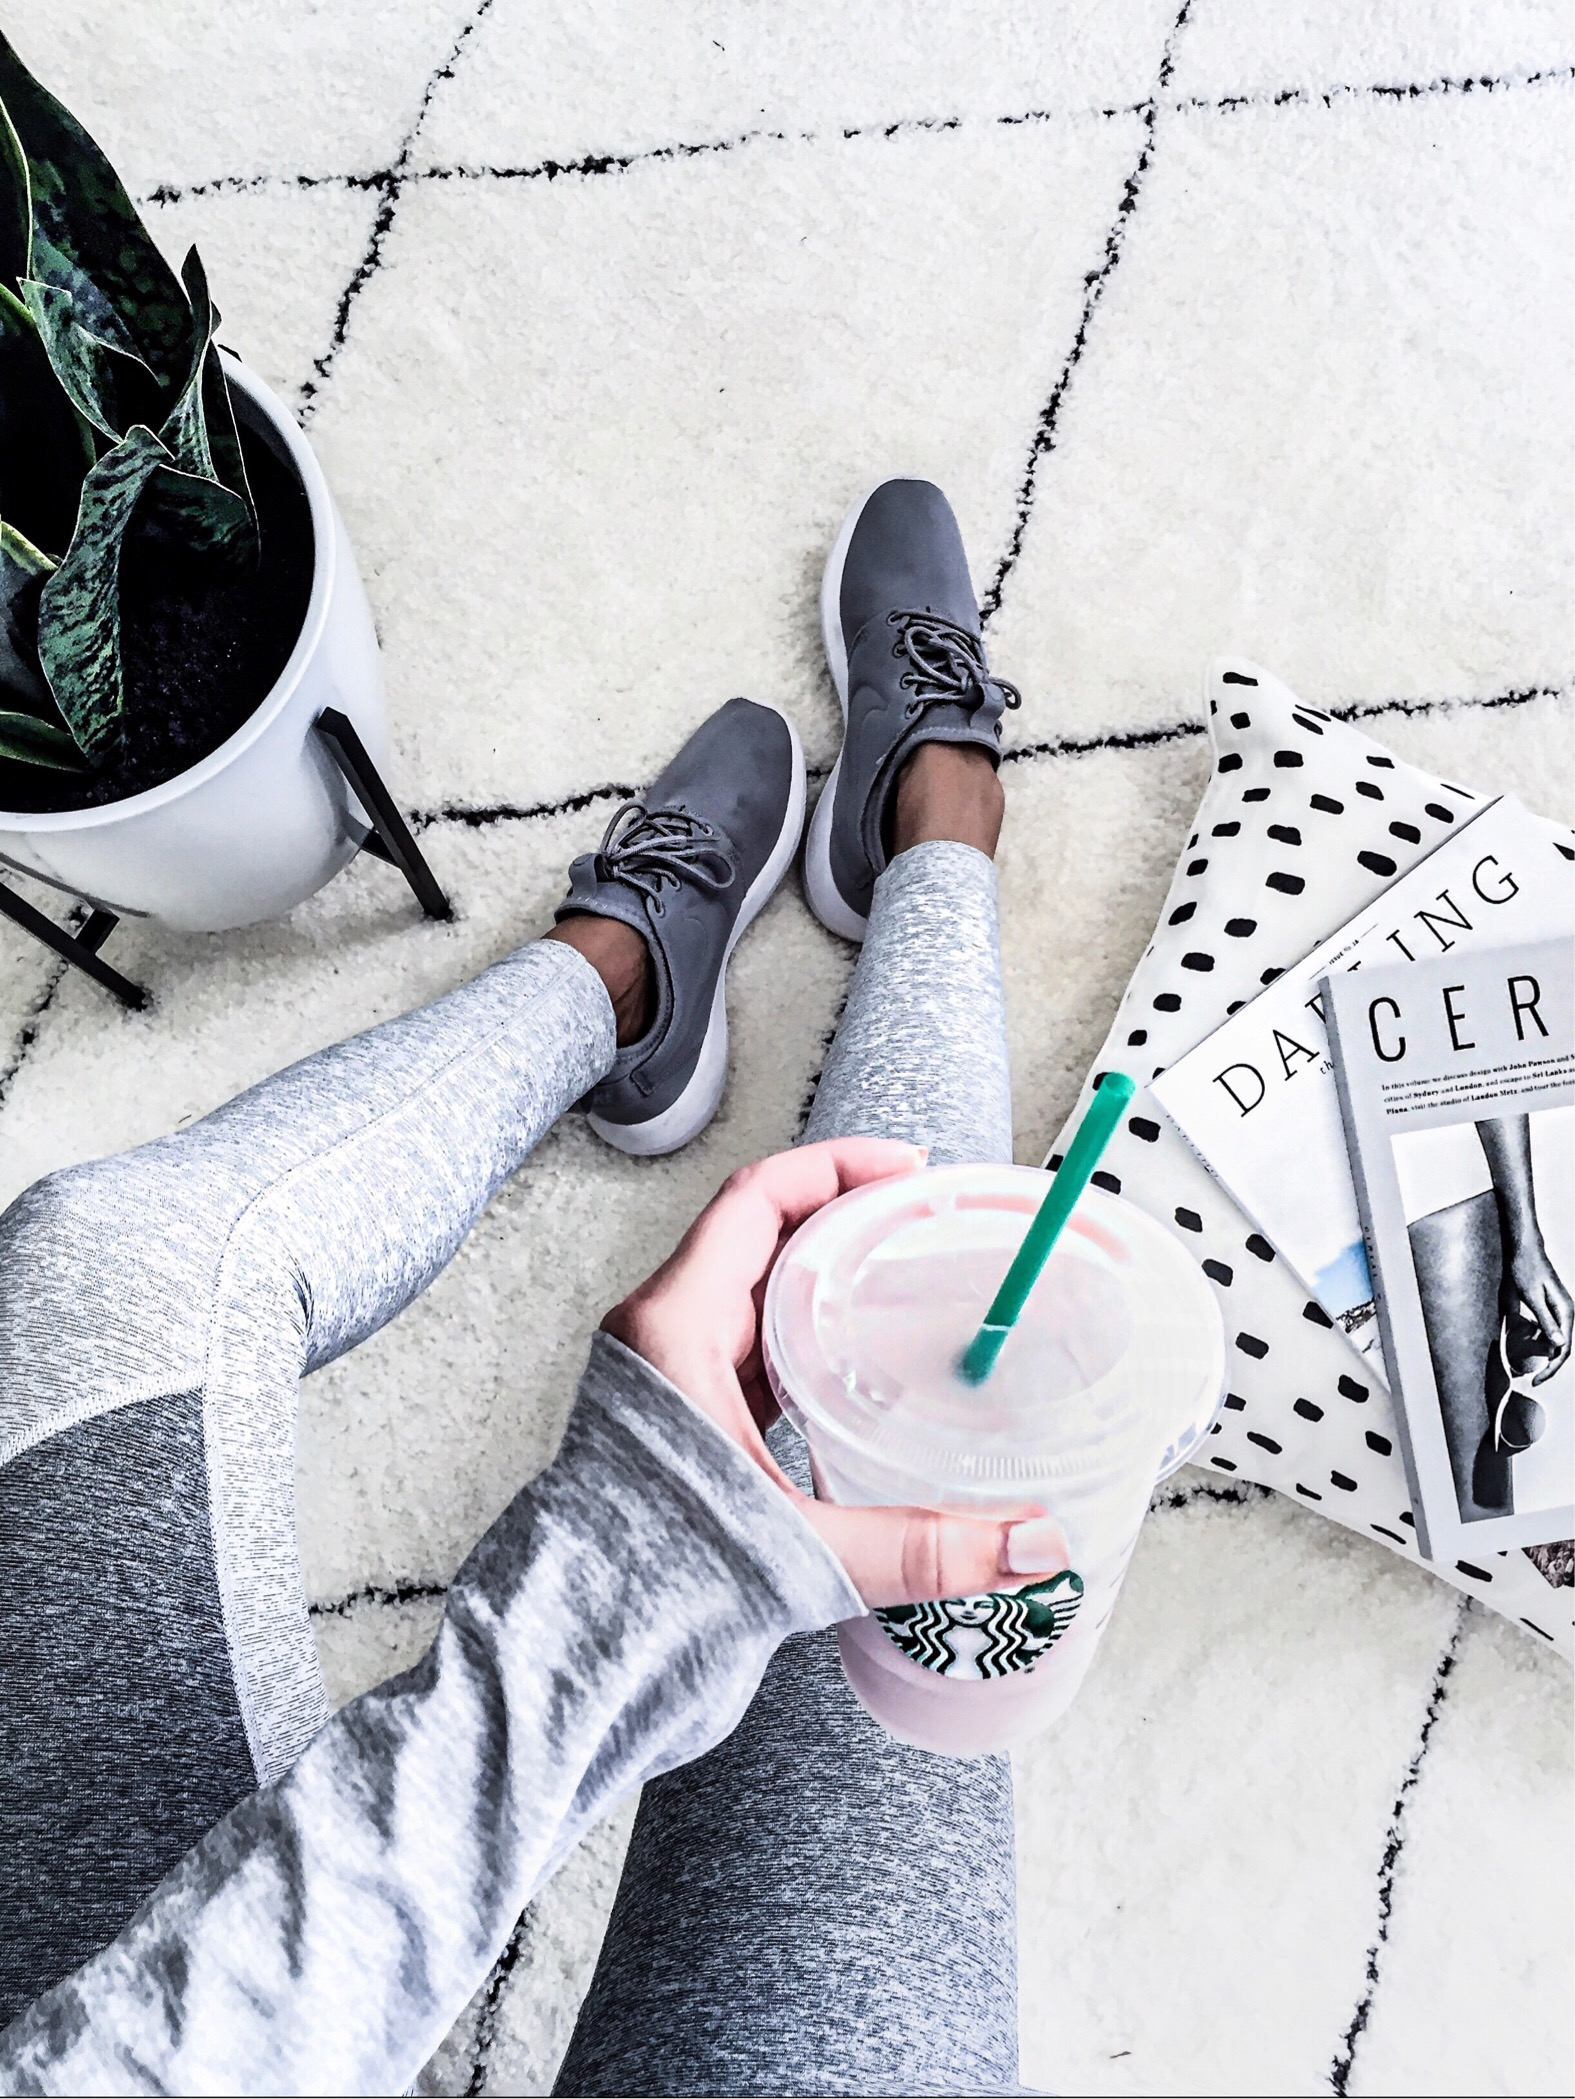 Tiffany Jais Houston fashion and lifestyle blogger of Flaunt and Center | Recent buys, Grey leggings from Outdoor Voices and grey Nikes, snake plant, mid-century planter, starbucks acai strawberry drink, black and white dotted pillow